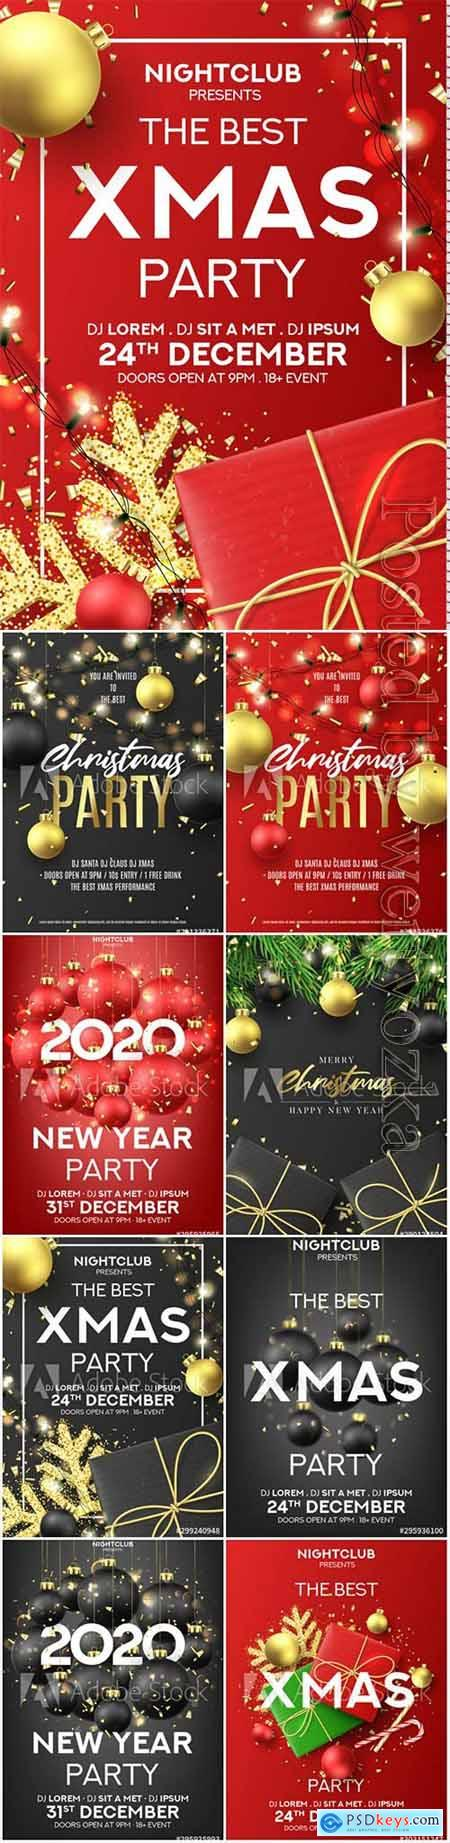 Happy New Year party poster, holiday vector